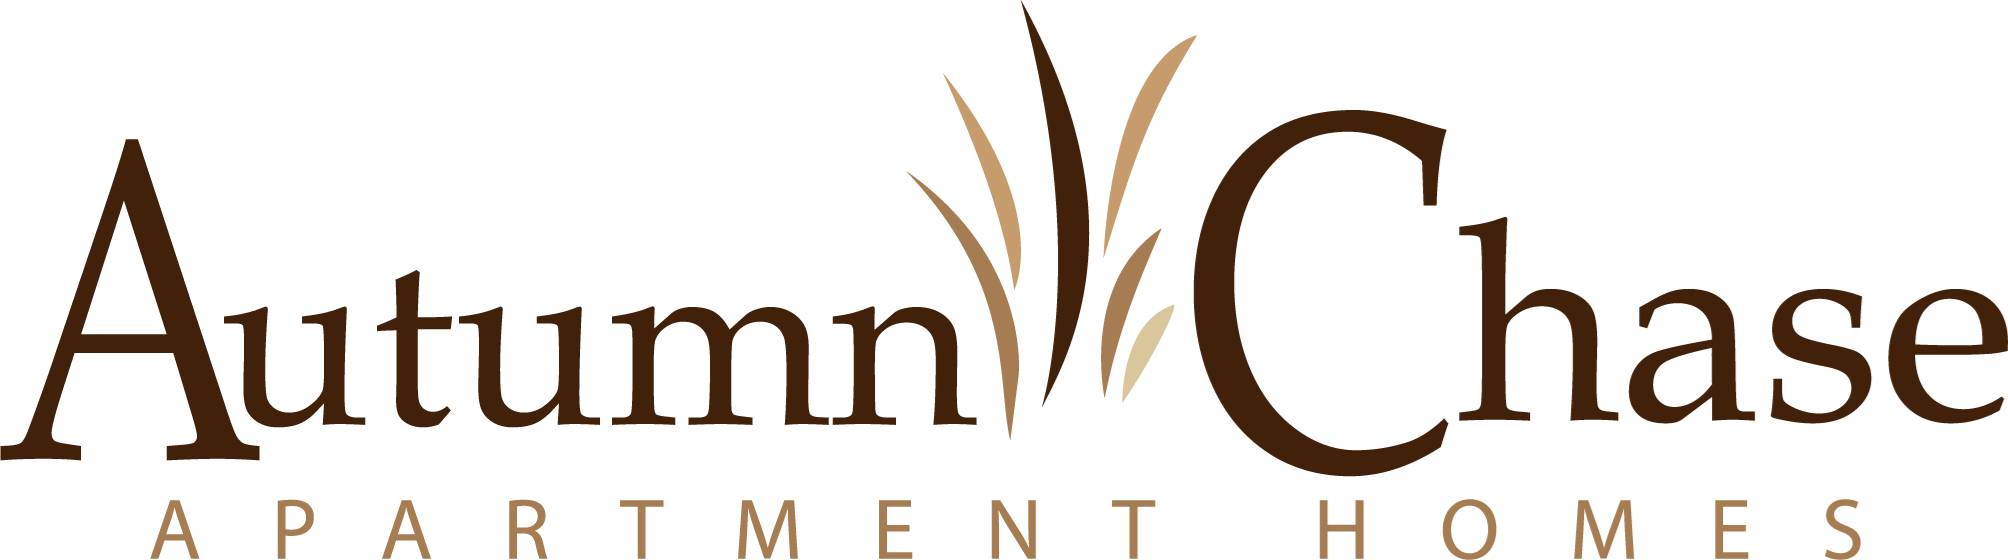 Autumn Chase Apartment homes in mobile Alabama logo